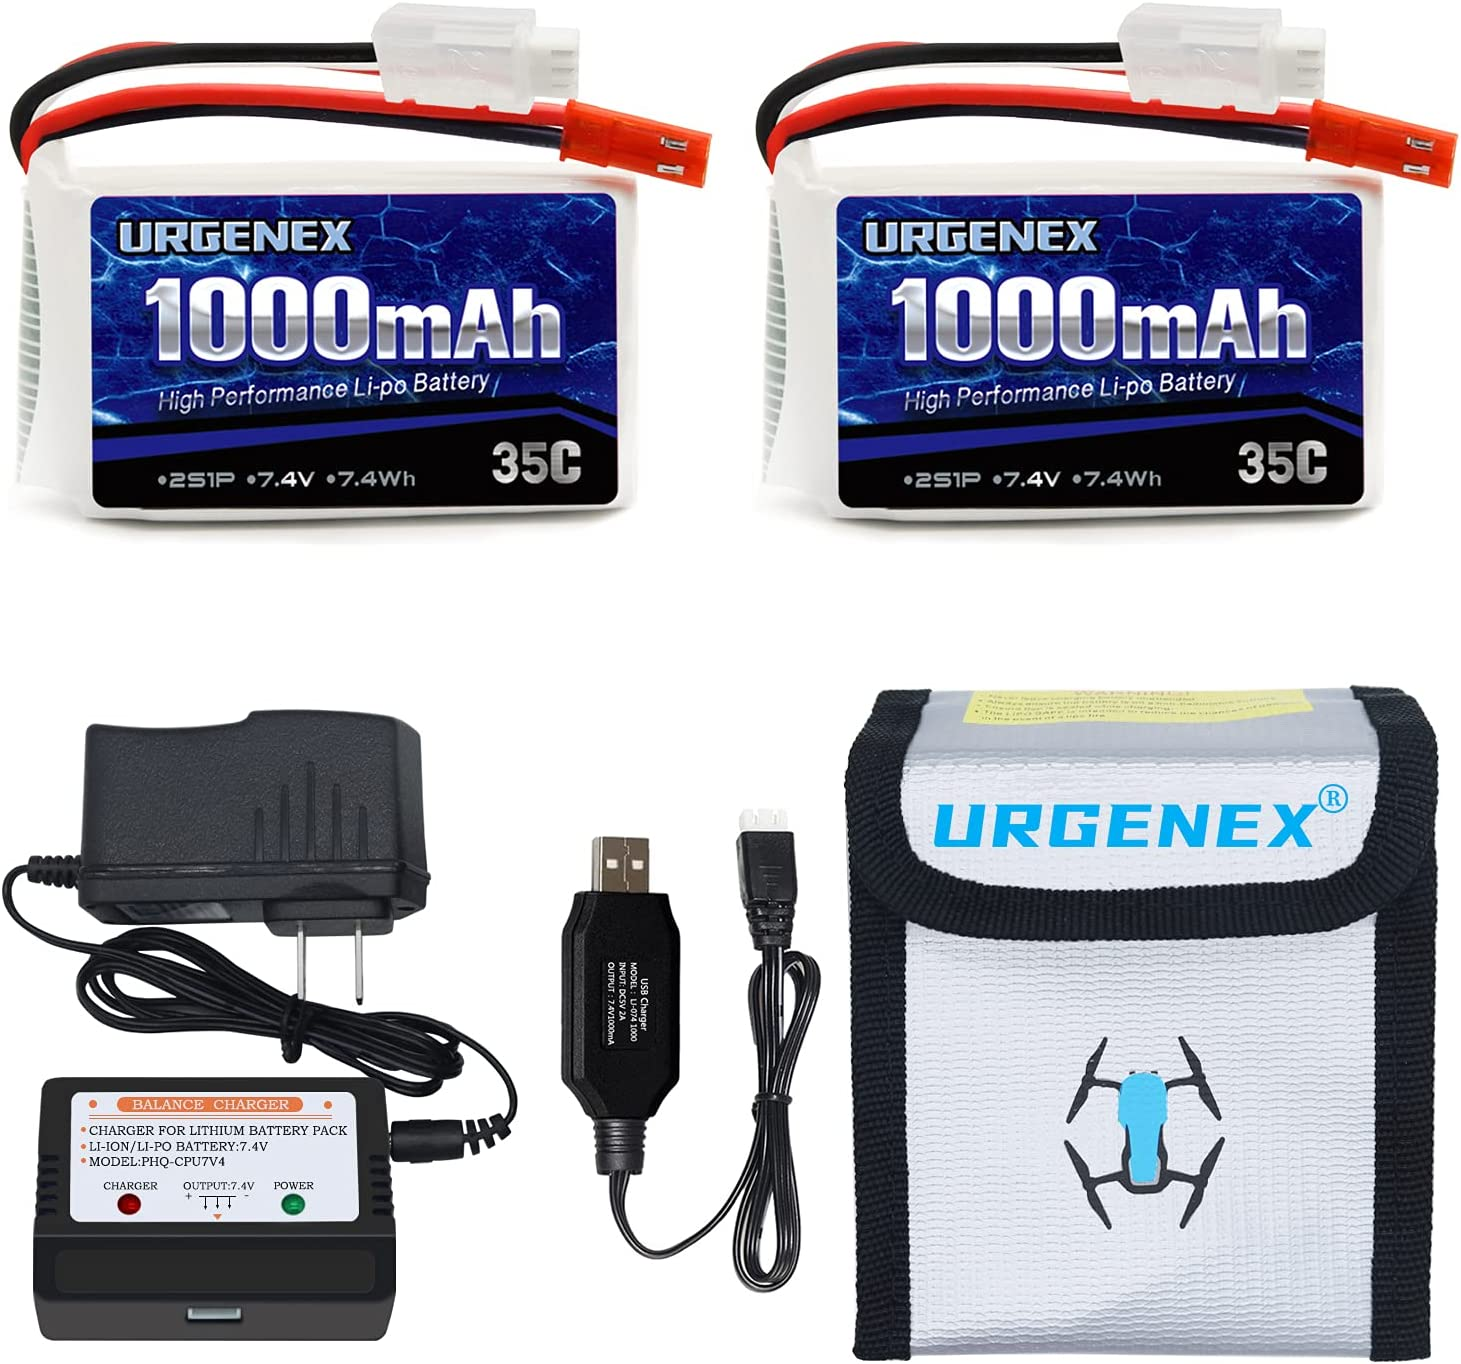 URGENEX 2S Courier shipping free Lipo Battery 7.4v 1000mah 35C Ranking TOP2 and Plug JST with